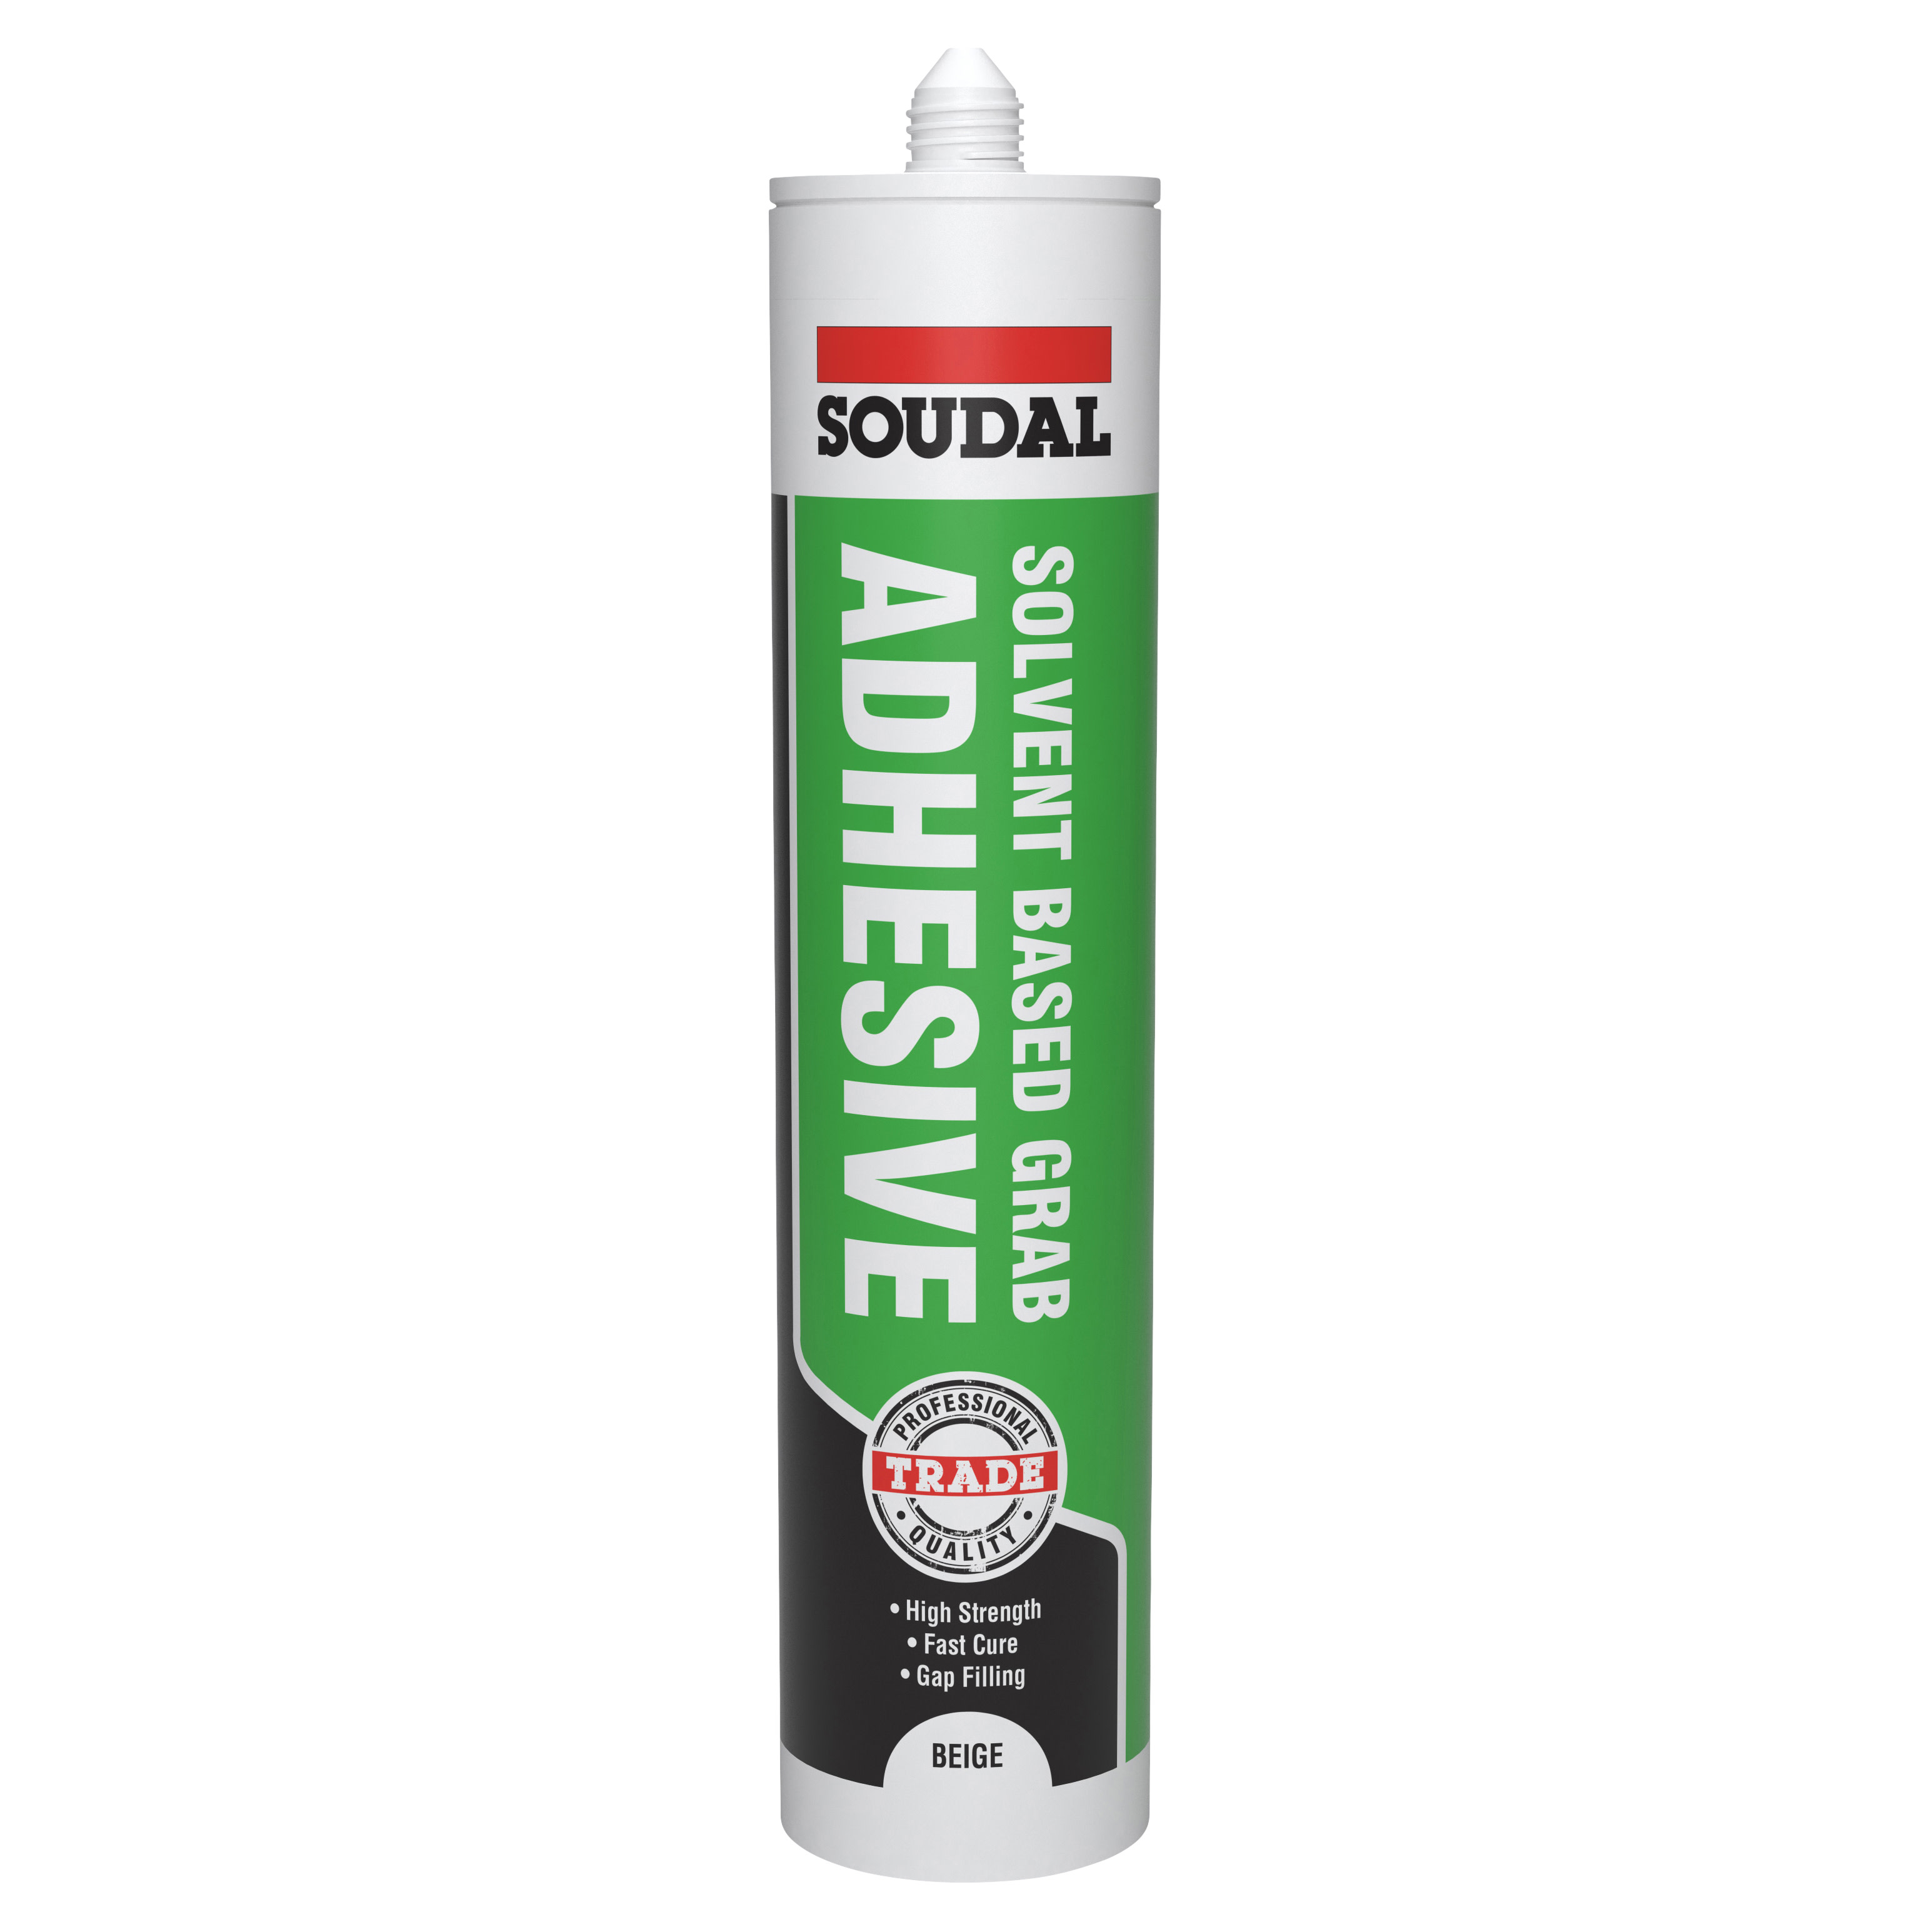 Soudal Grip All Adhesive - 290ml - Solvent Based)